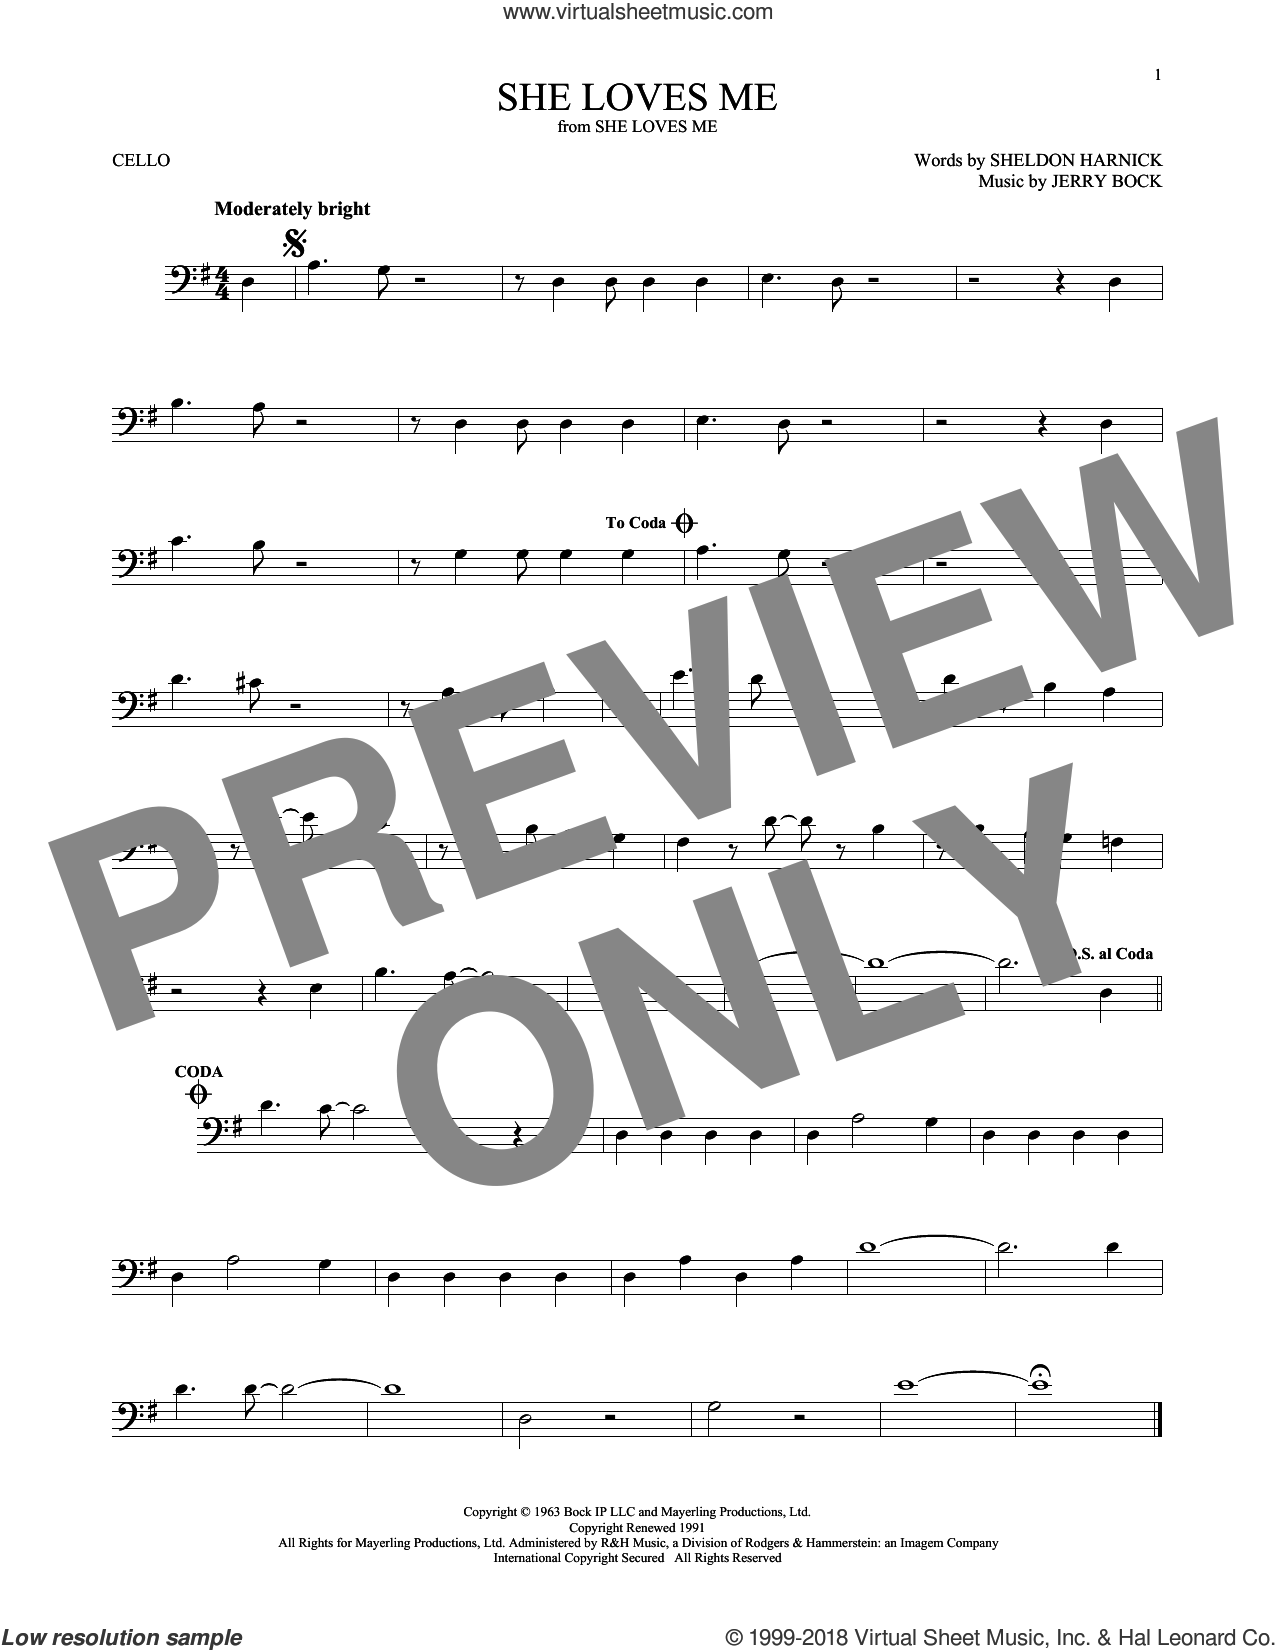 She Loves Me sheet music for cello solo by Jerry Bock and Sheldon Harnick, intermediate skill level